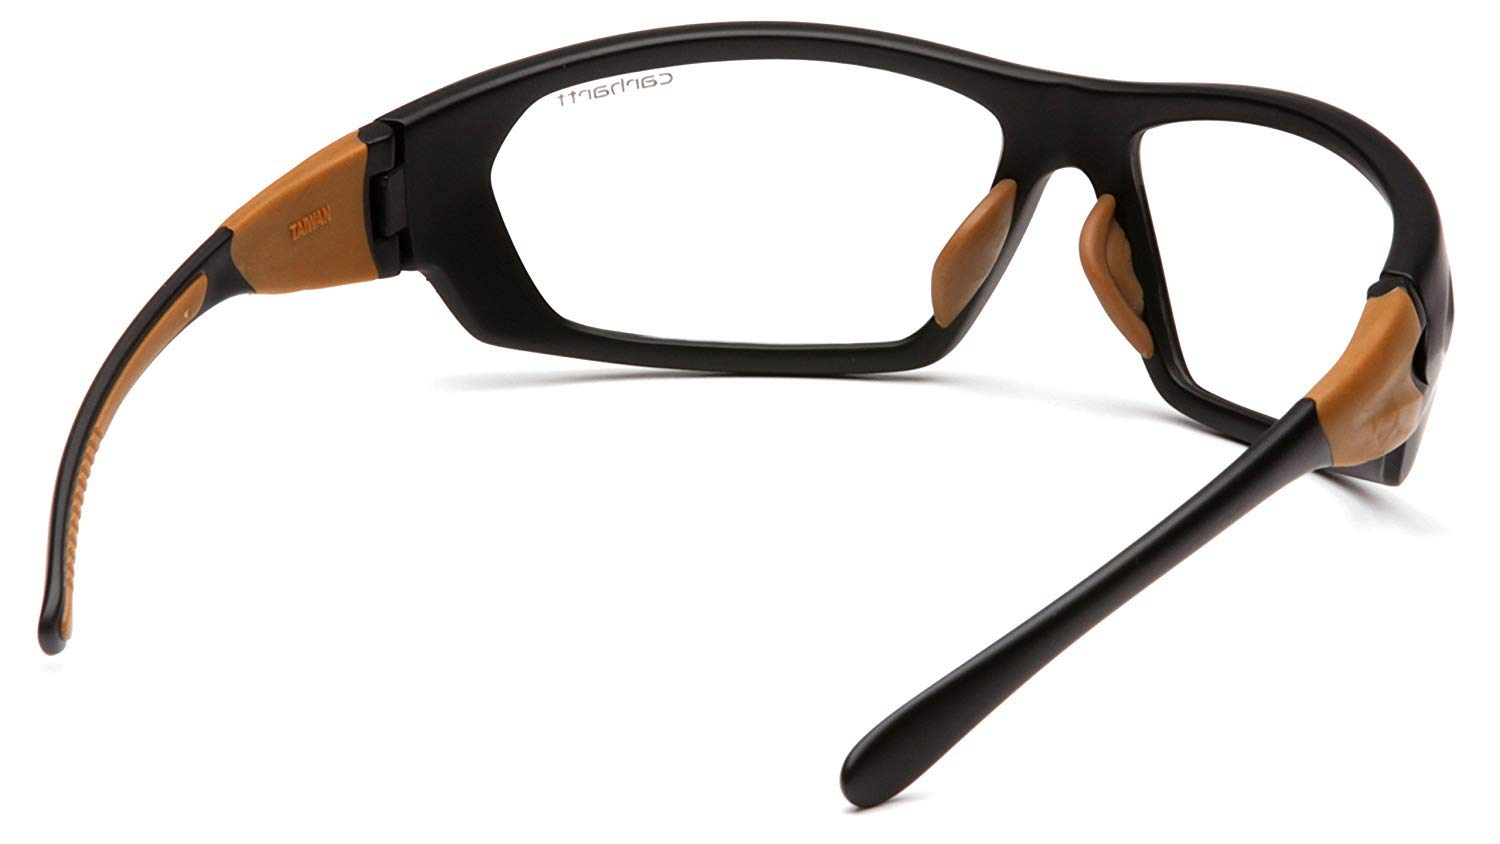 Carhartt Carbondale Safety Glasses with Clear Anti-Fog Lens (2 Pack) by Carhartt (Image #4)